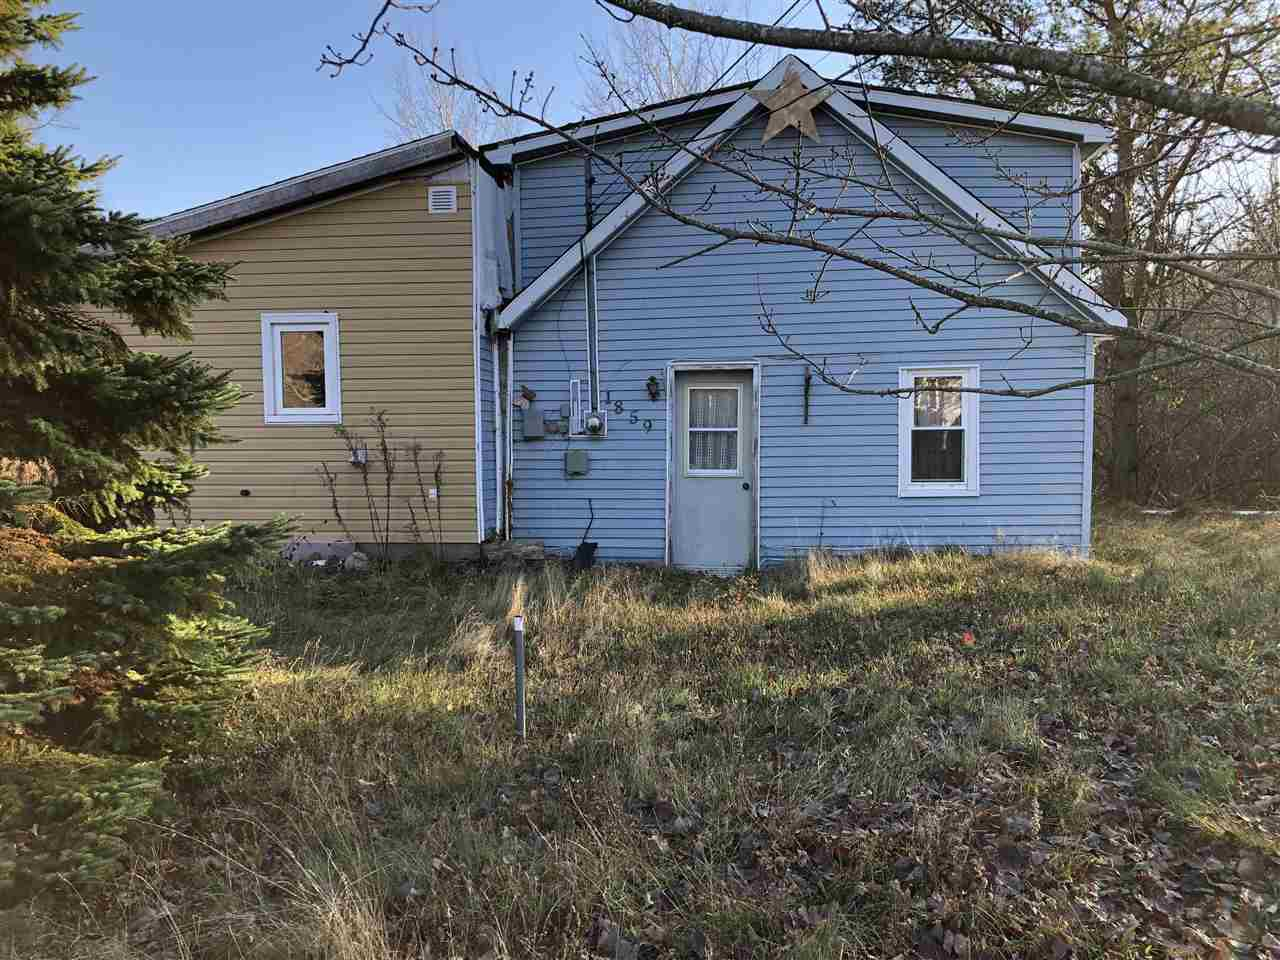 Main Photo: 1859 ACADIA Avenue in Westville: 107-Trenton,Westville,Pictou Residential for sale (Northern Region)  : MLS®# 202024070